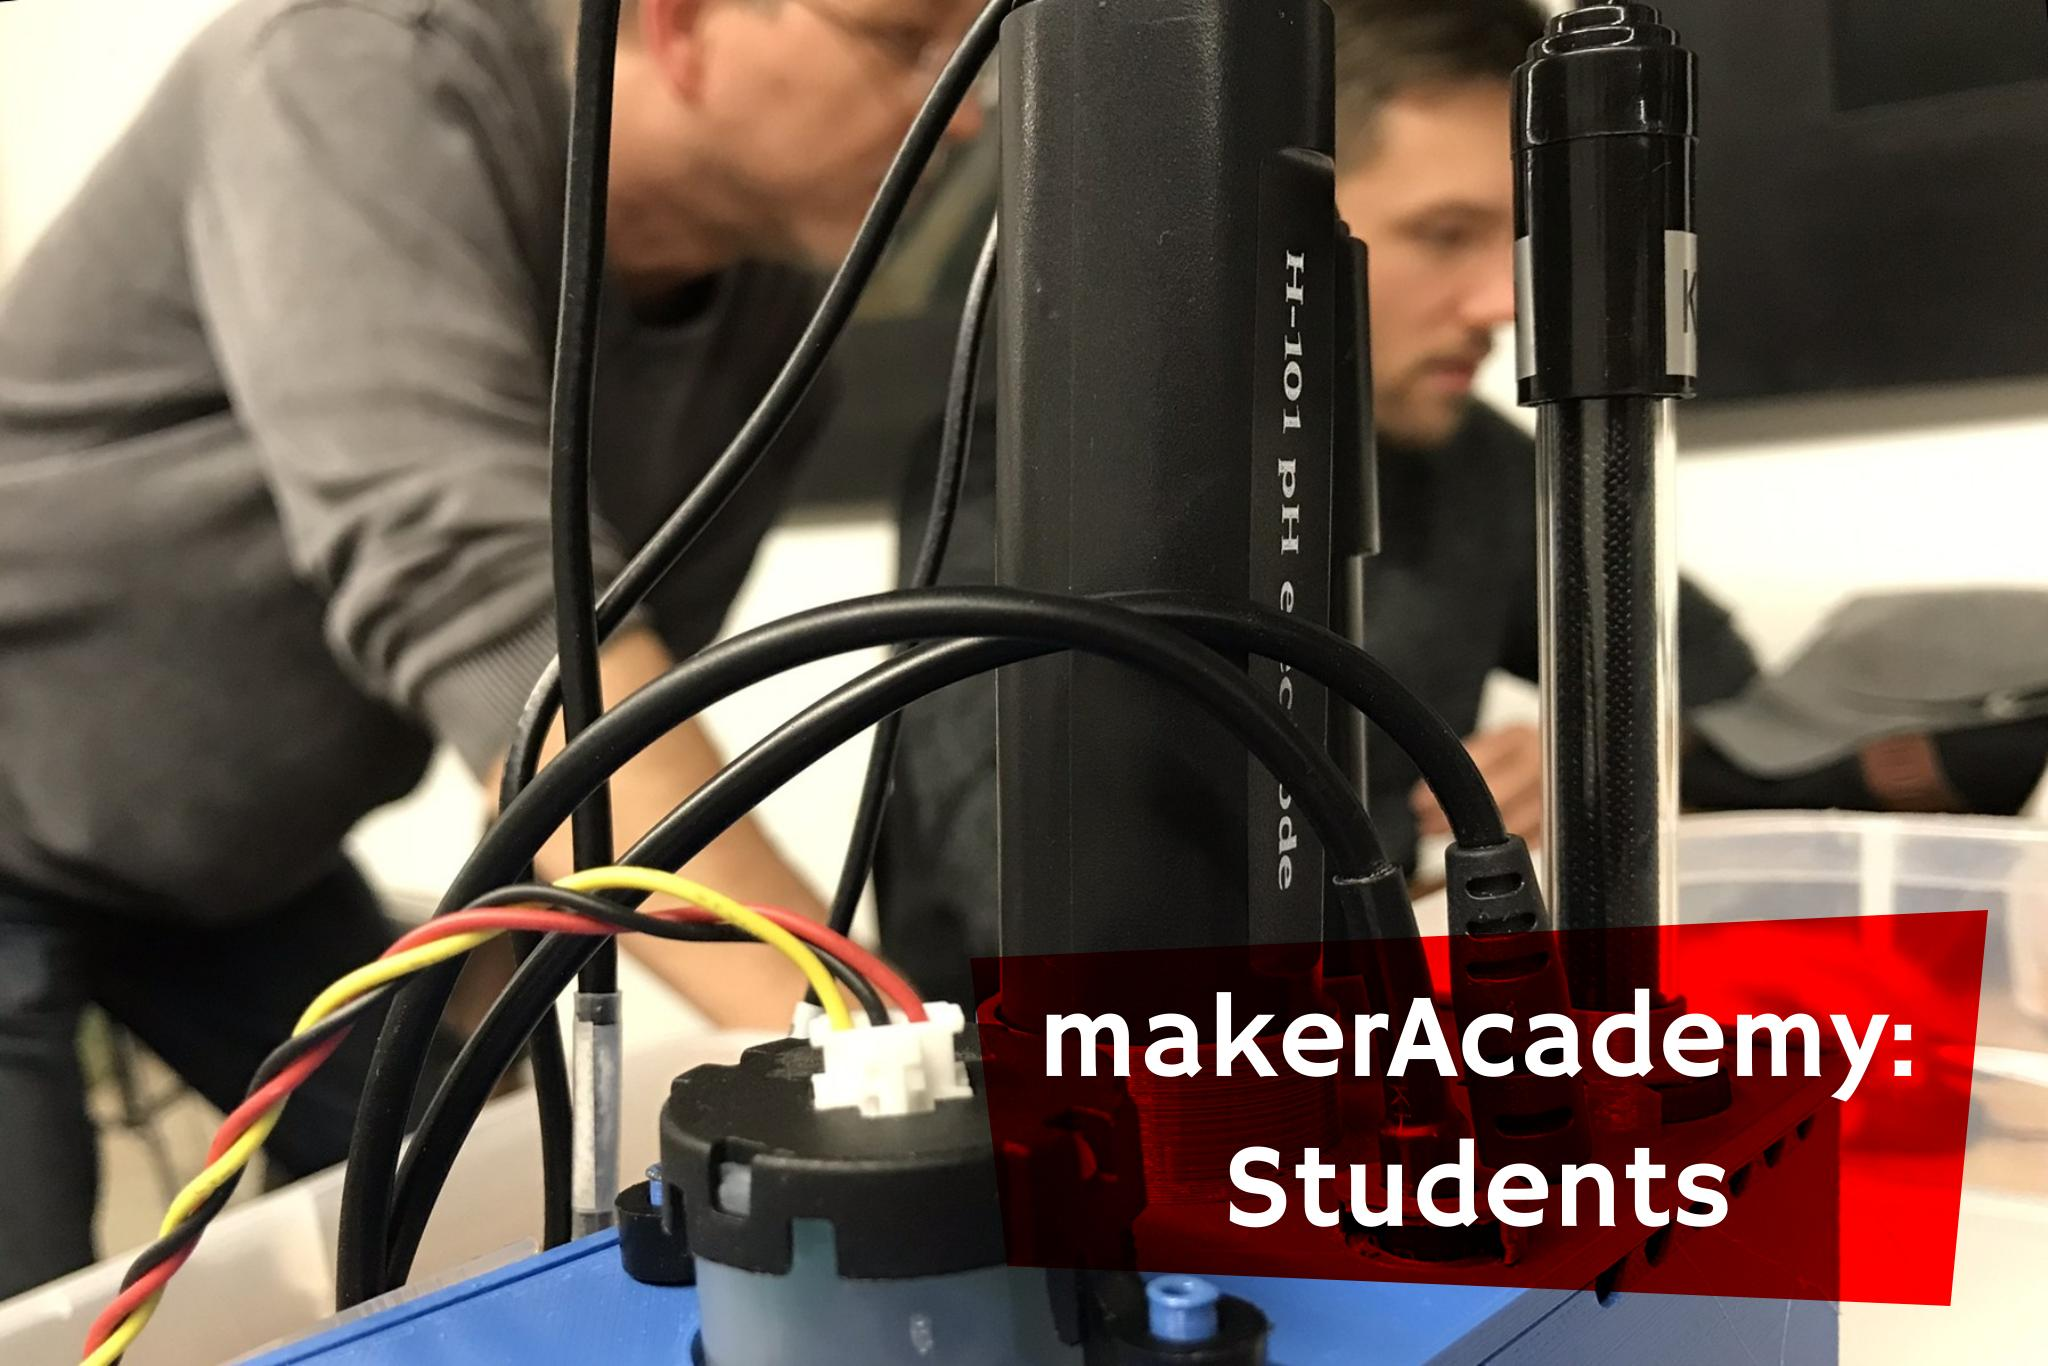 makerAcademy: Students